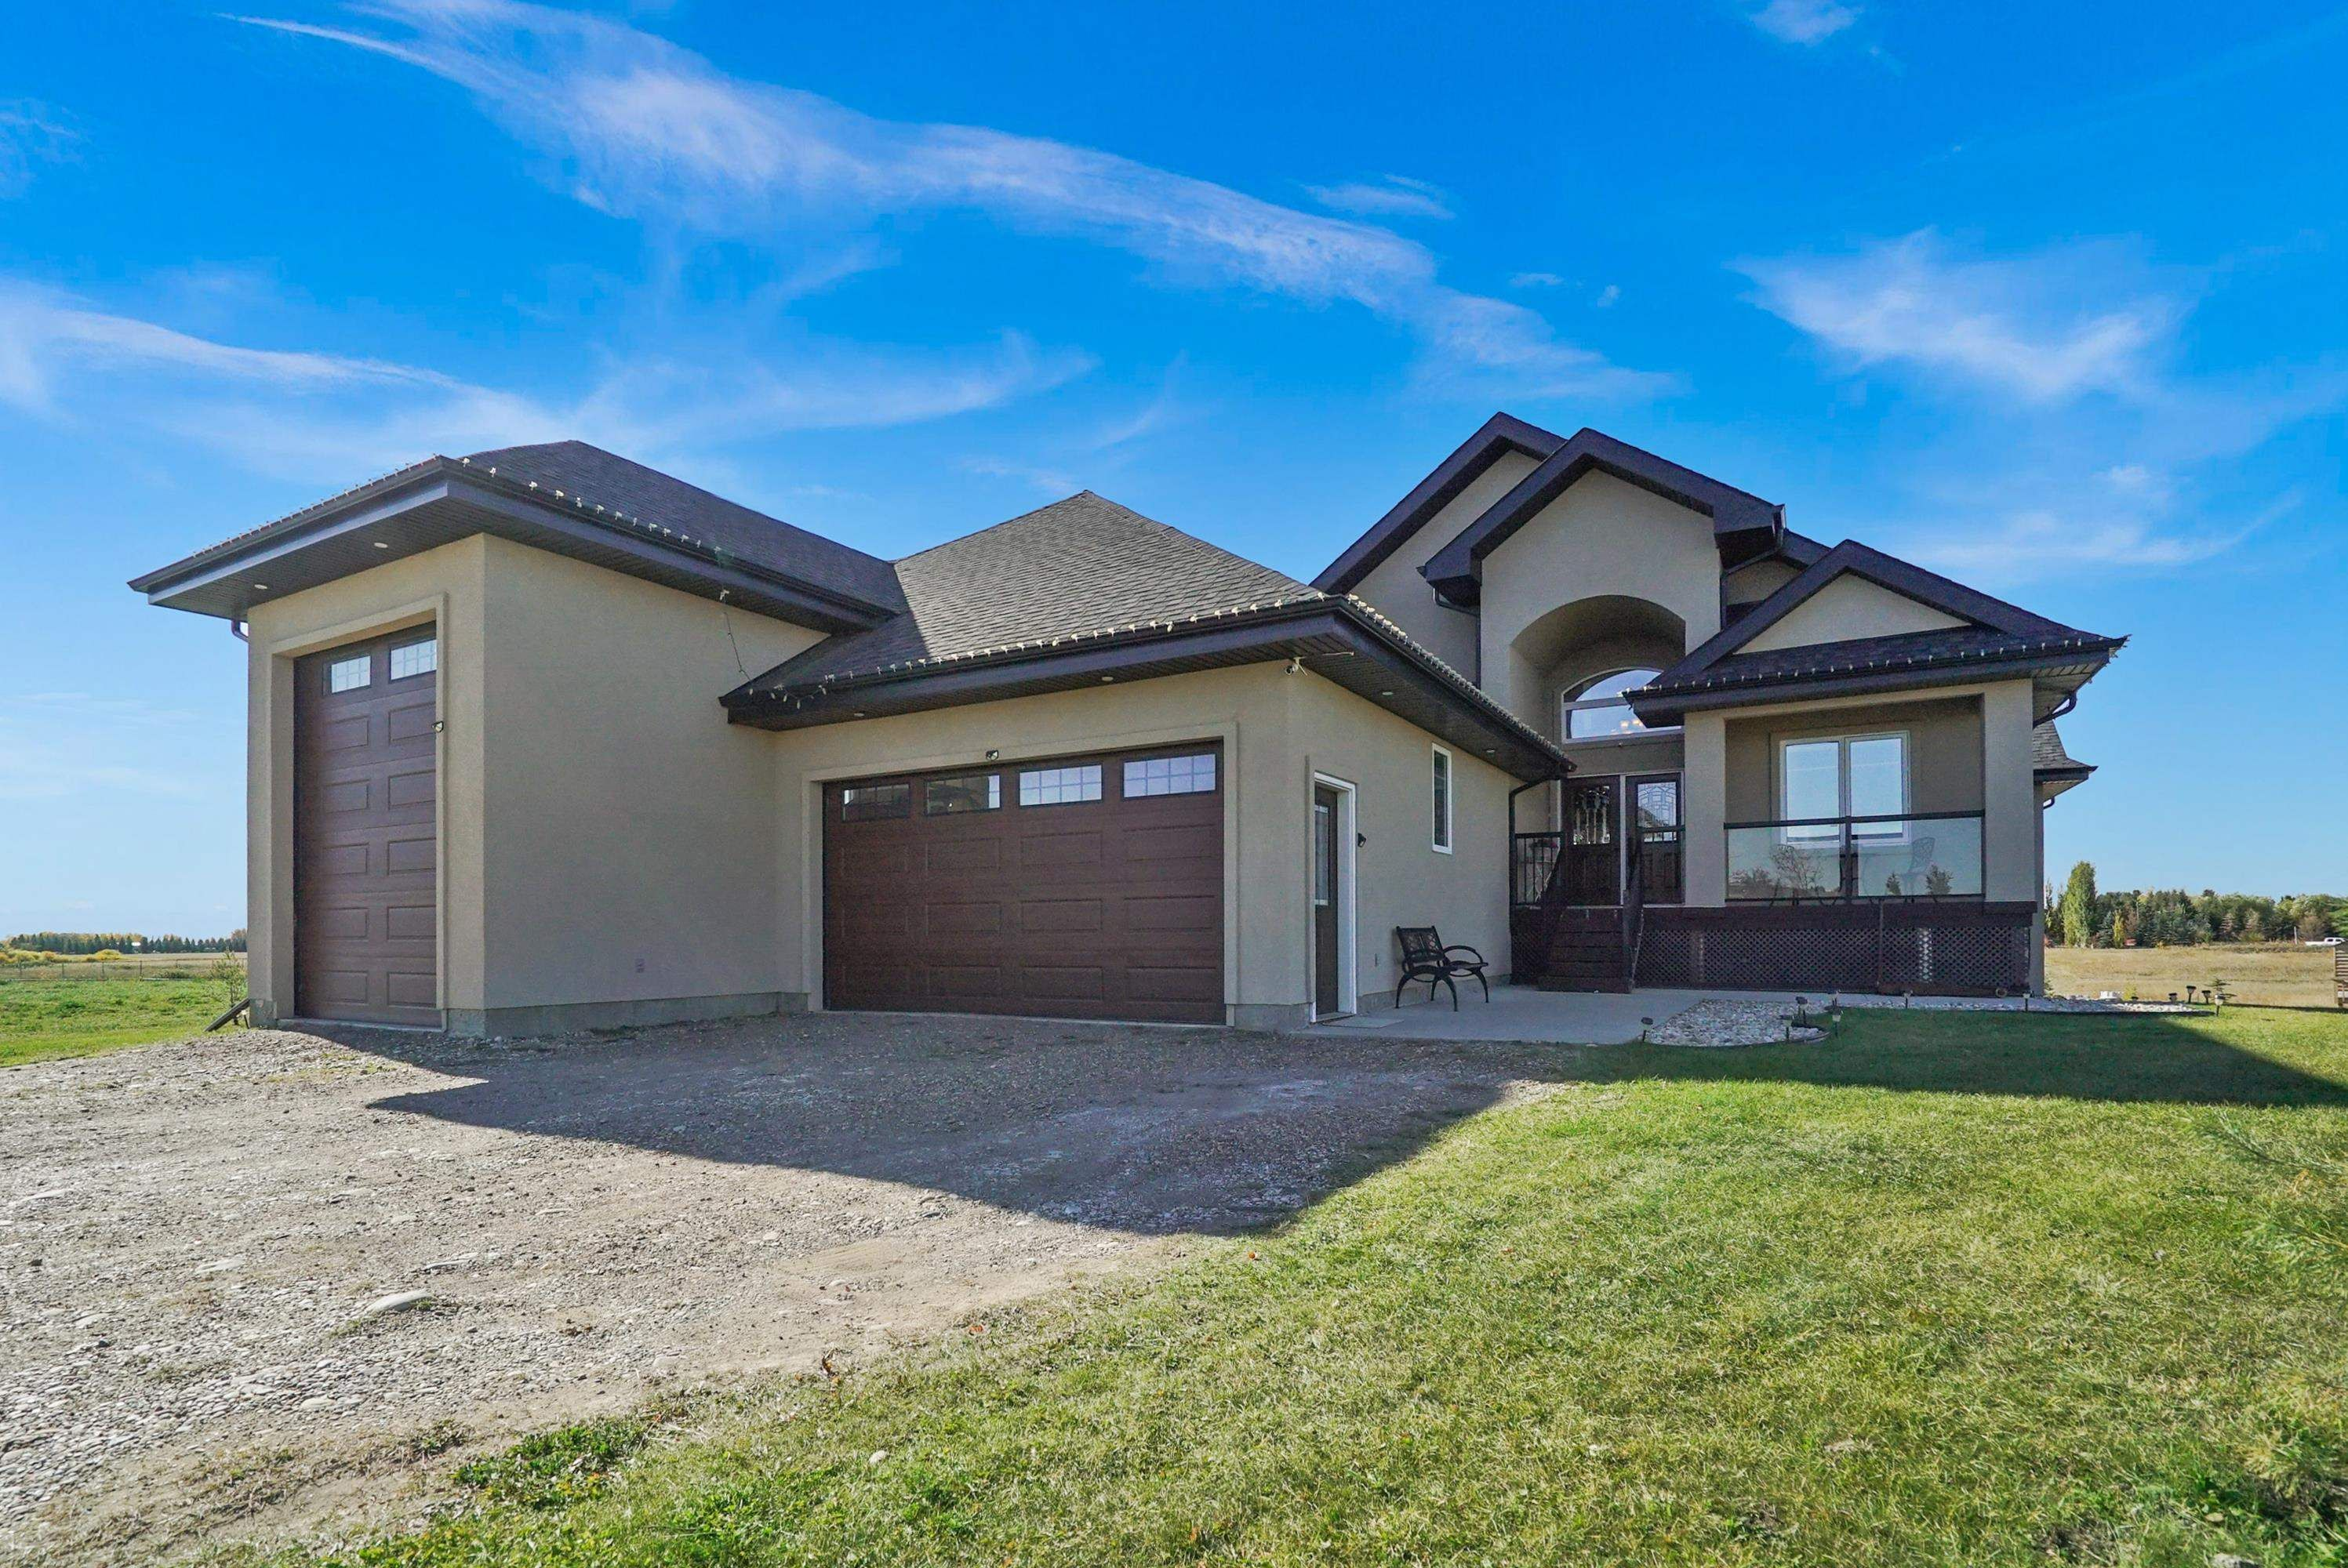 Main Photo: 209 PROVIDENCE Place: Rural Sturgeon County House for sale : MLS®# E4266519